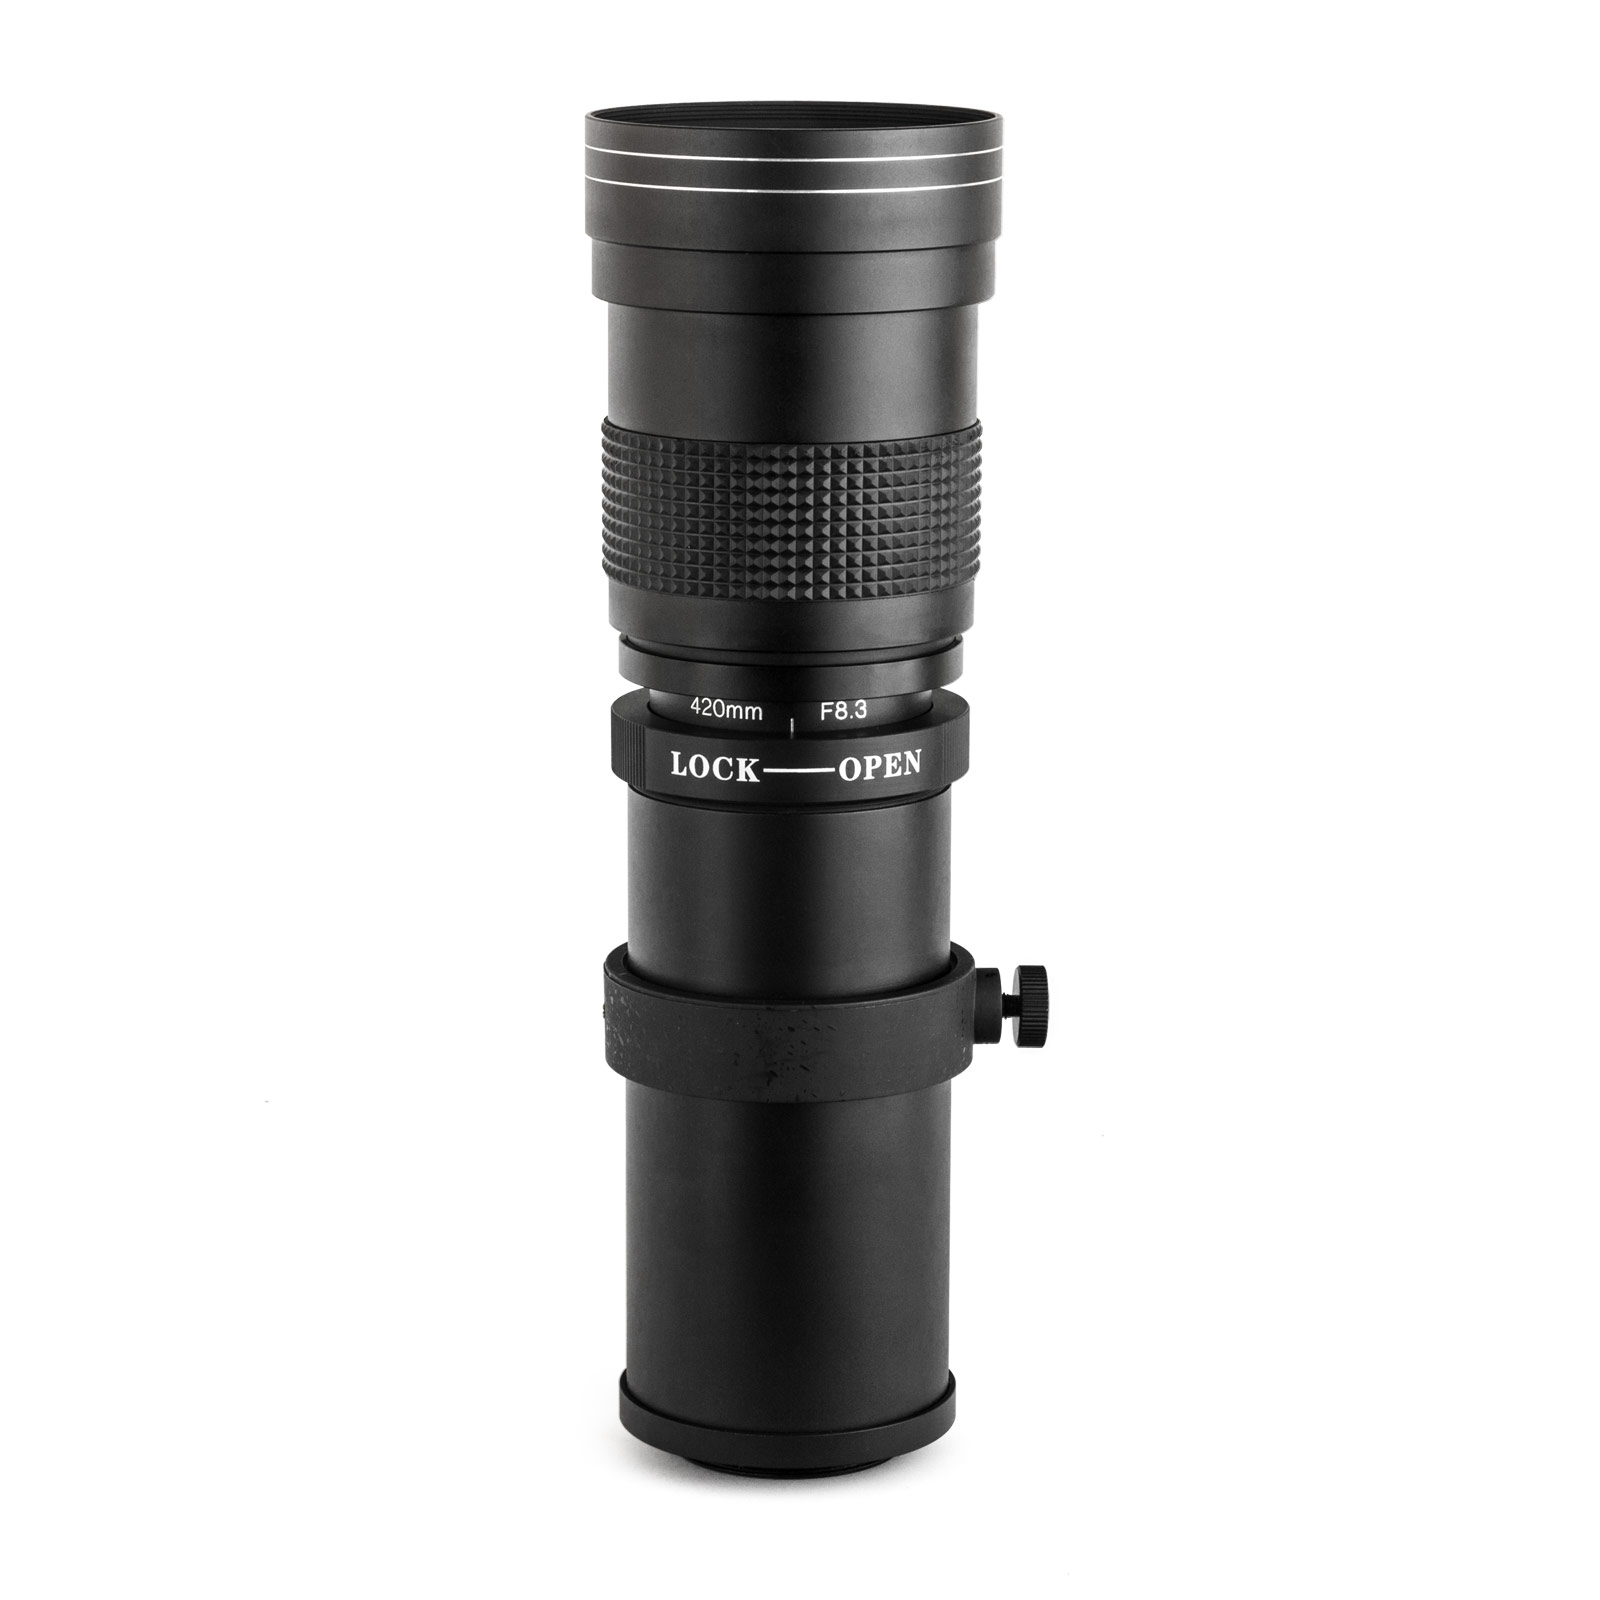 Opteka 420-800mm f/8.3 HD Telephoto Zoom Lens for Nikon D4s, D4, D3x, Df, D810, D800, D750, D610, D600, D8100, D800, D7100, D700 at Sears.com